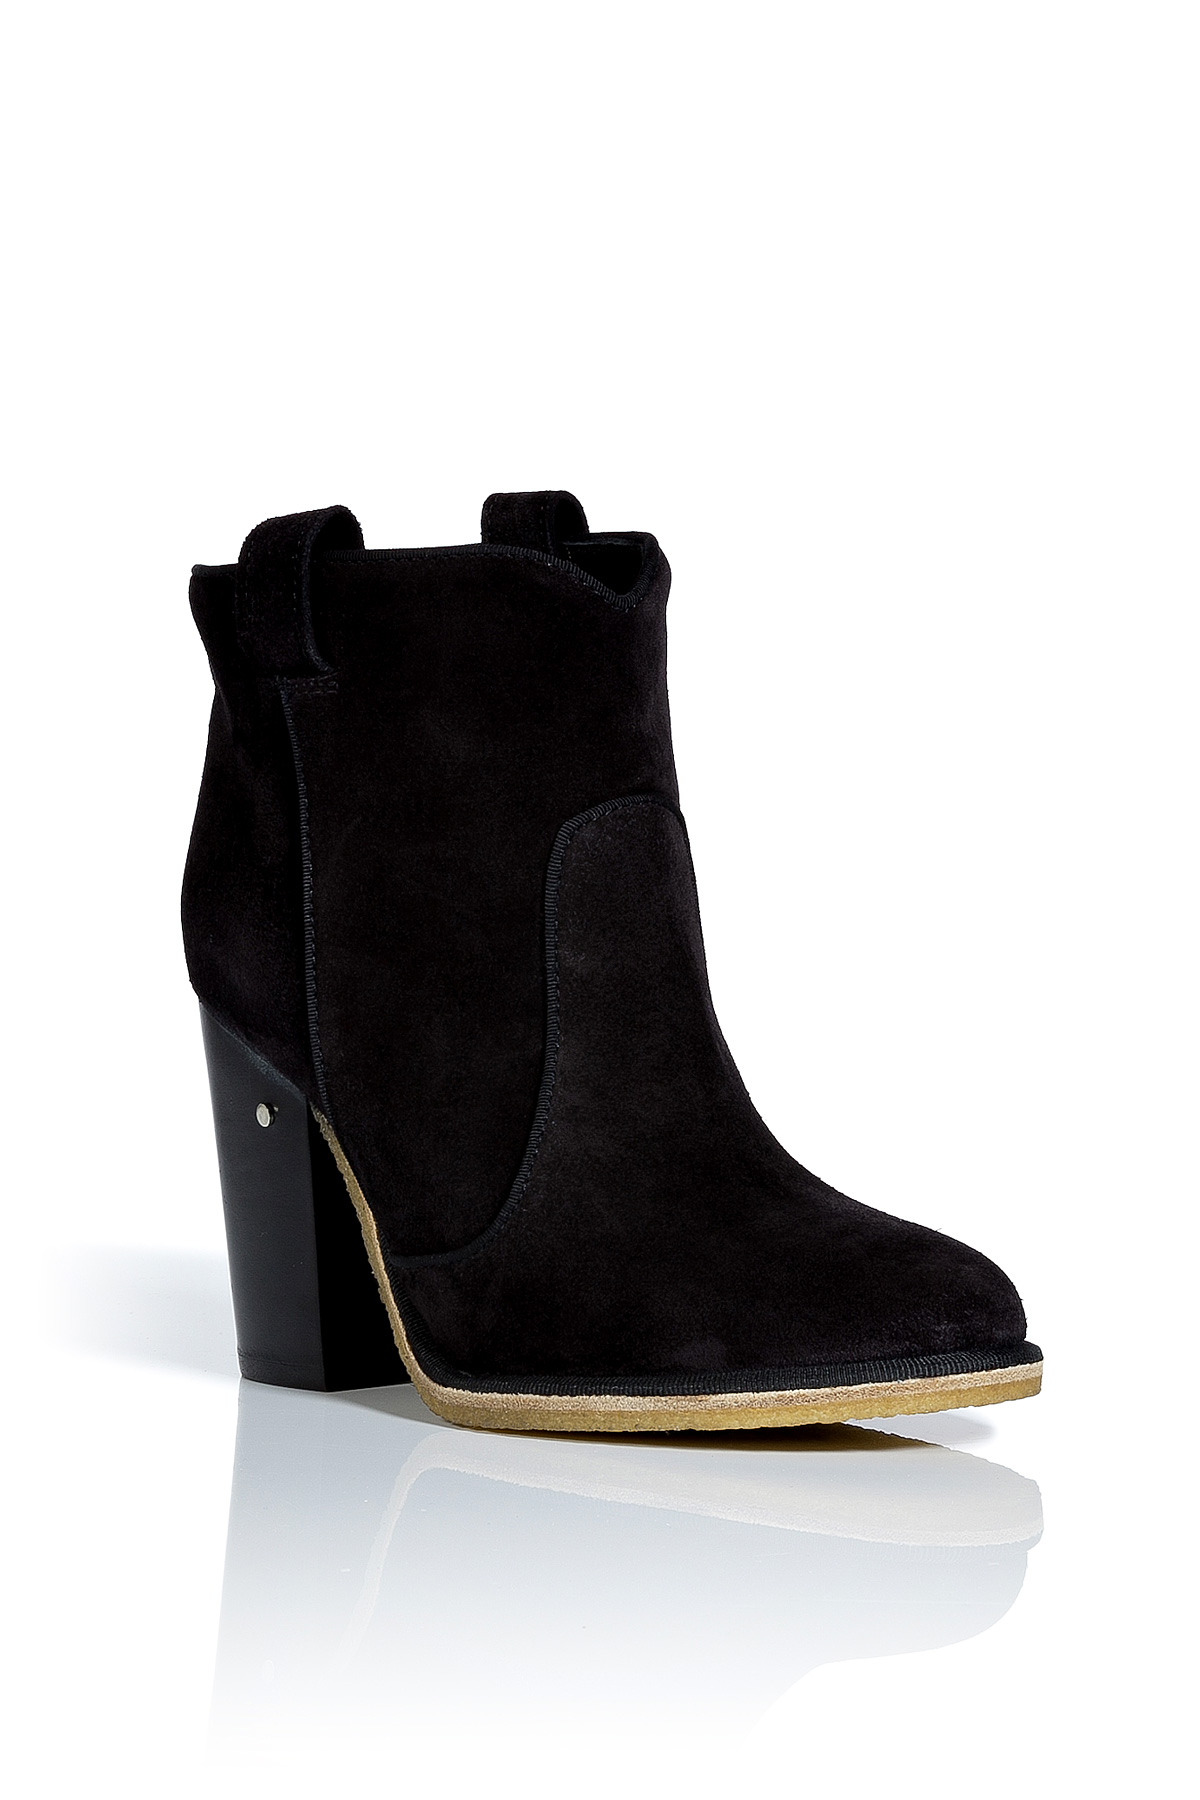 Laurence Dacade Black Suede Ankle Boots In Black Lyst